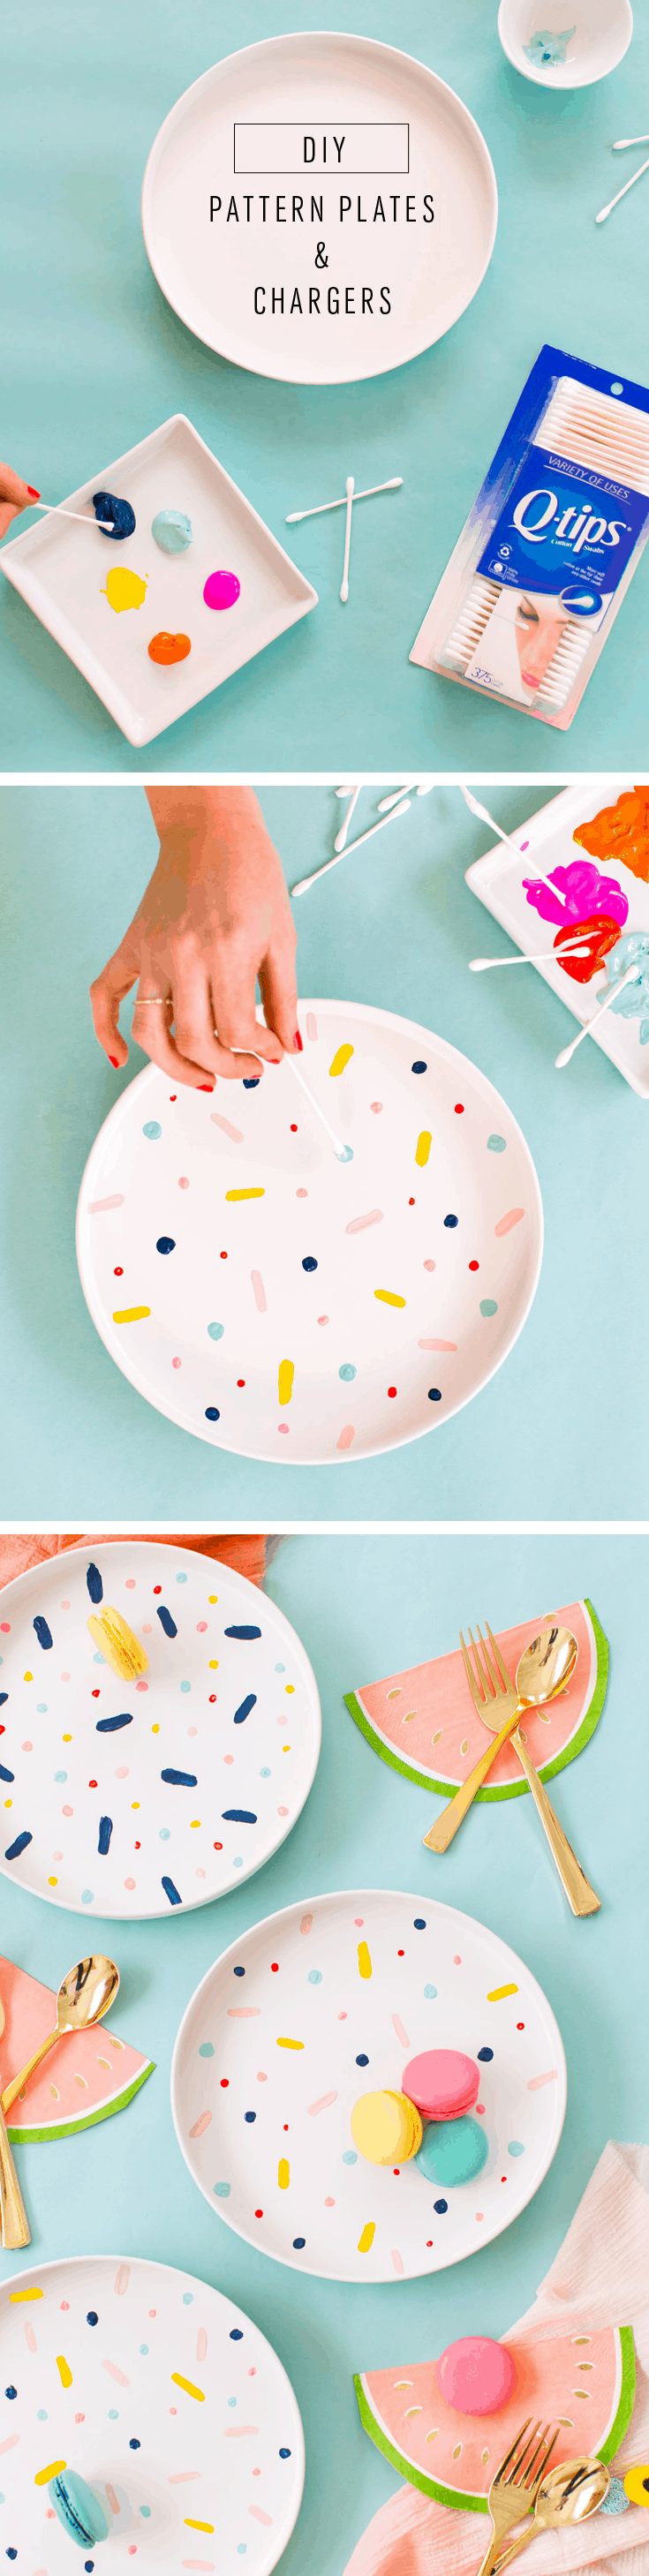 Diy confetti patterned charger plates